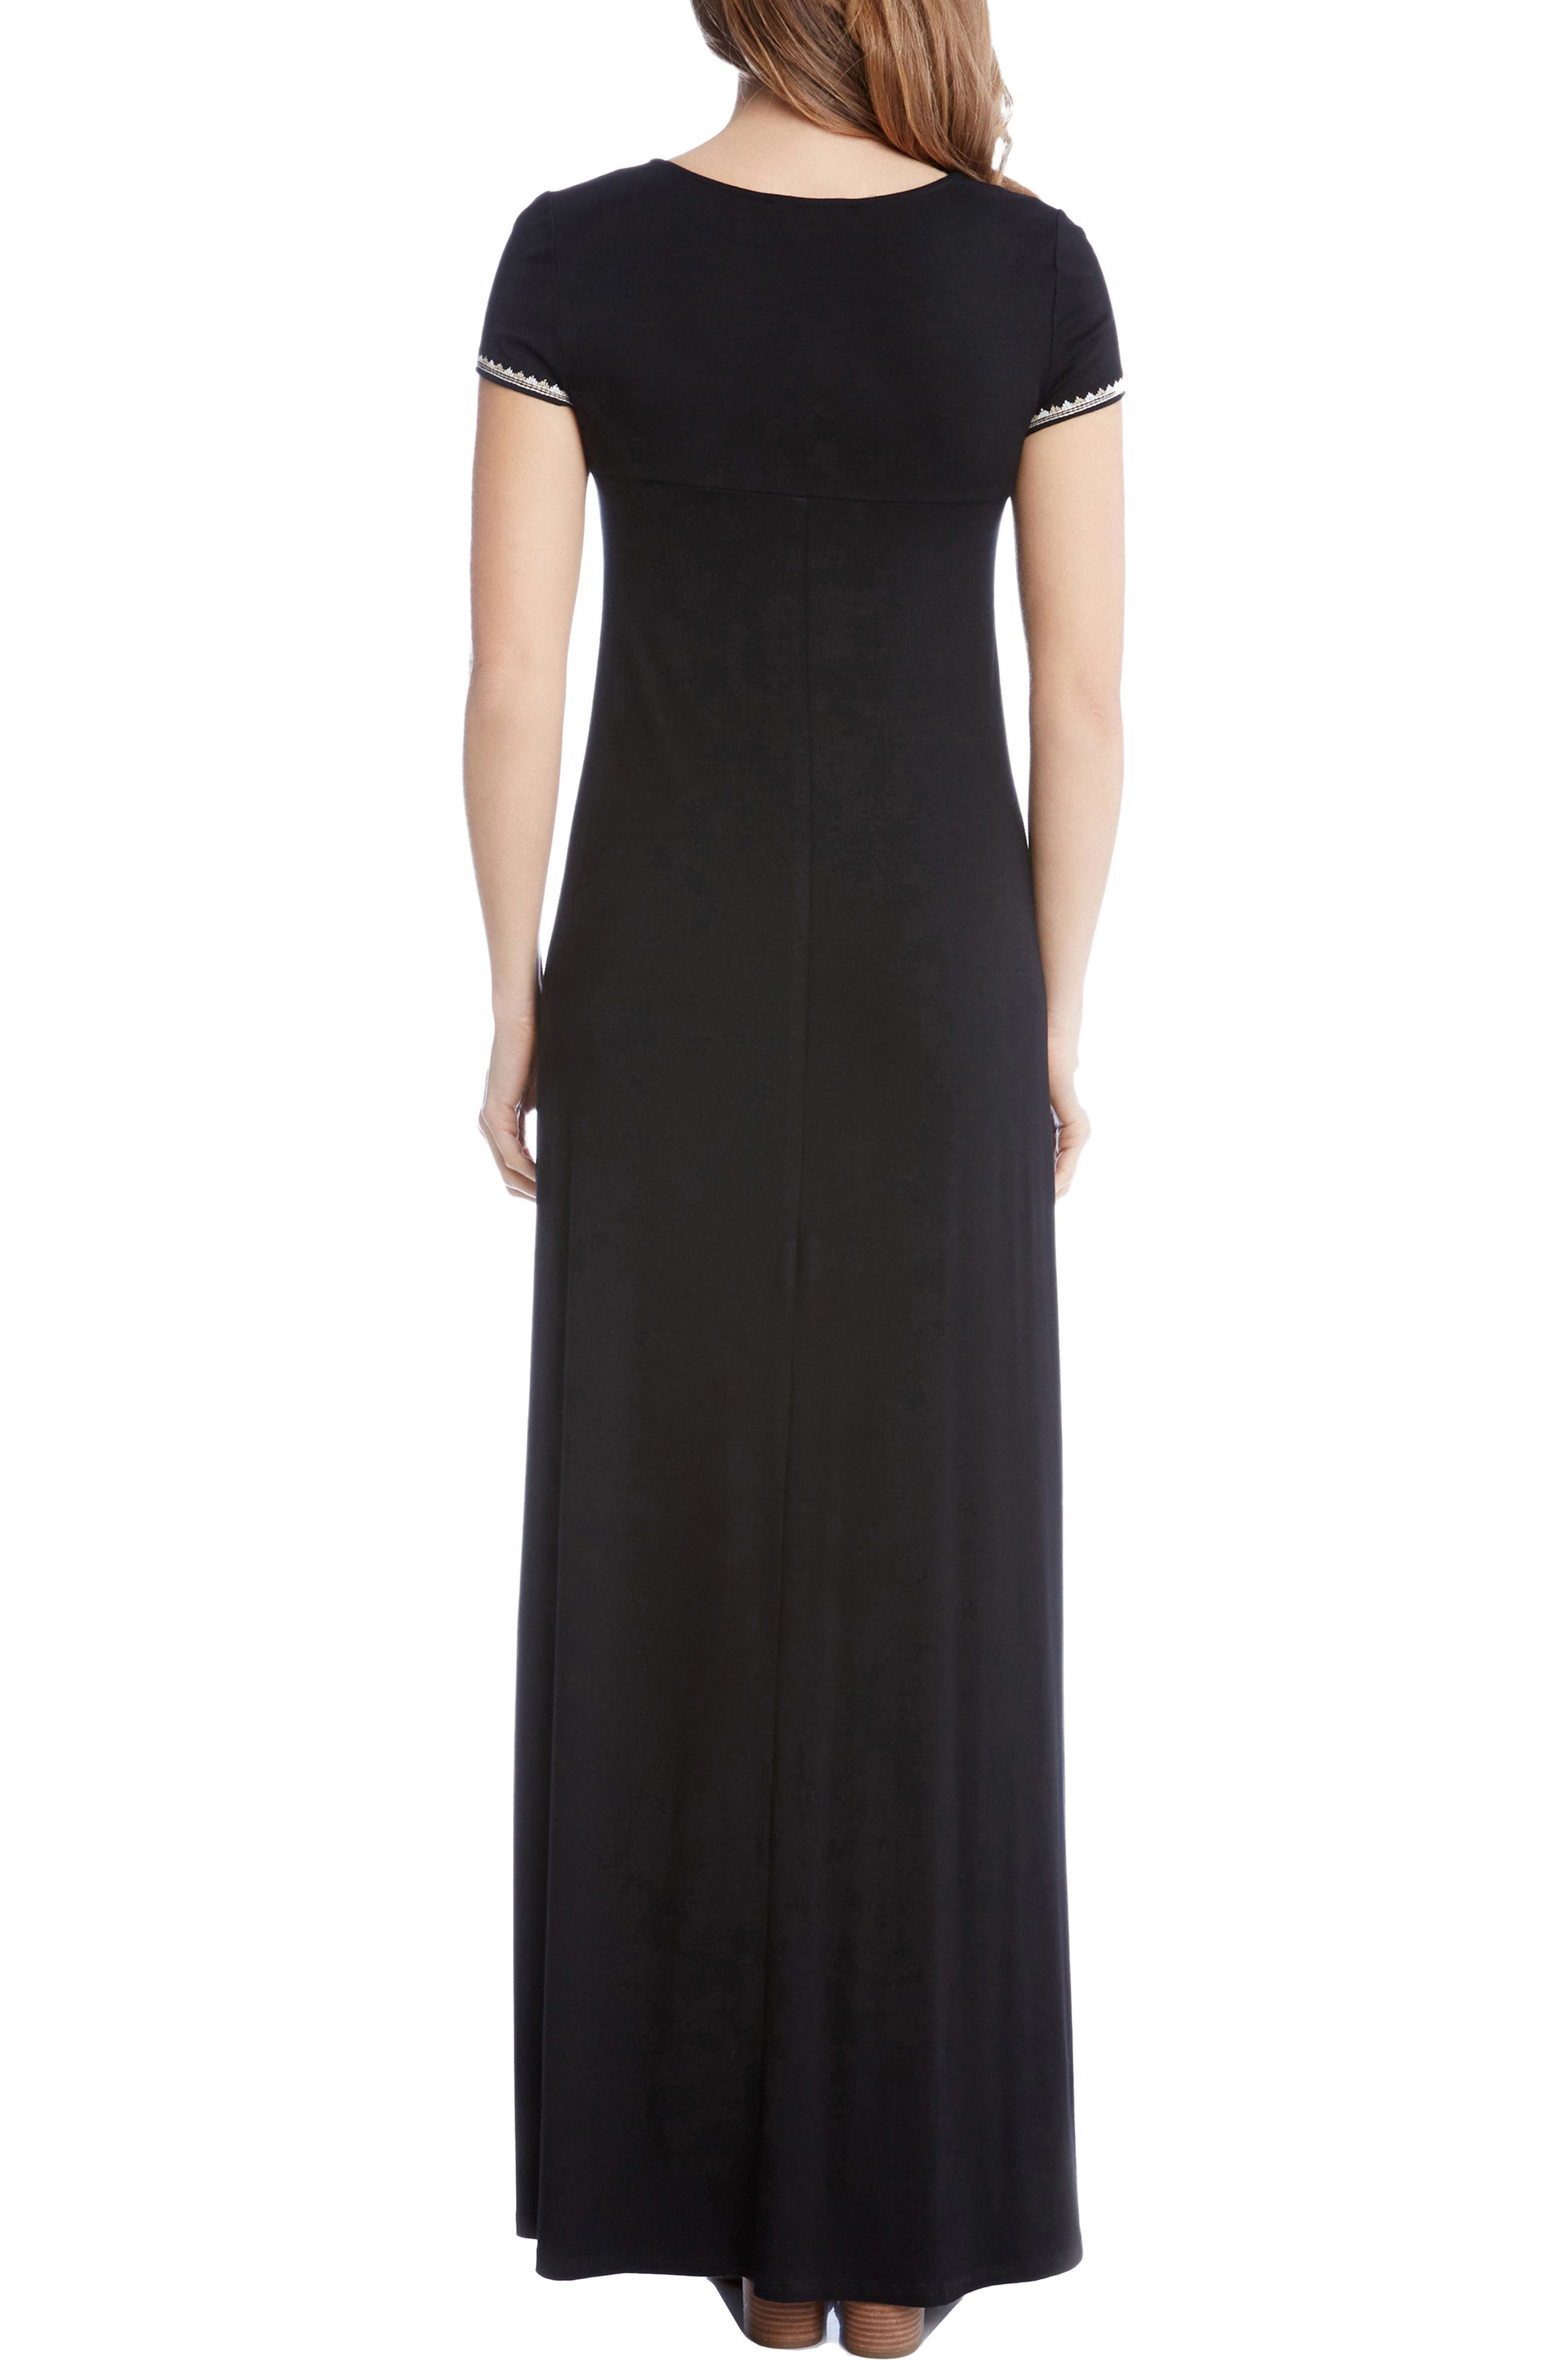 Embroidered Cap Sleeve Maxi Dress,                             Alternate thumbnail 2, color,                             001